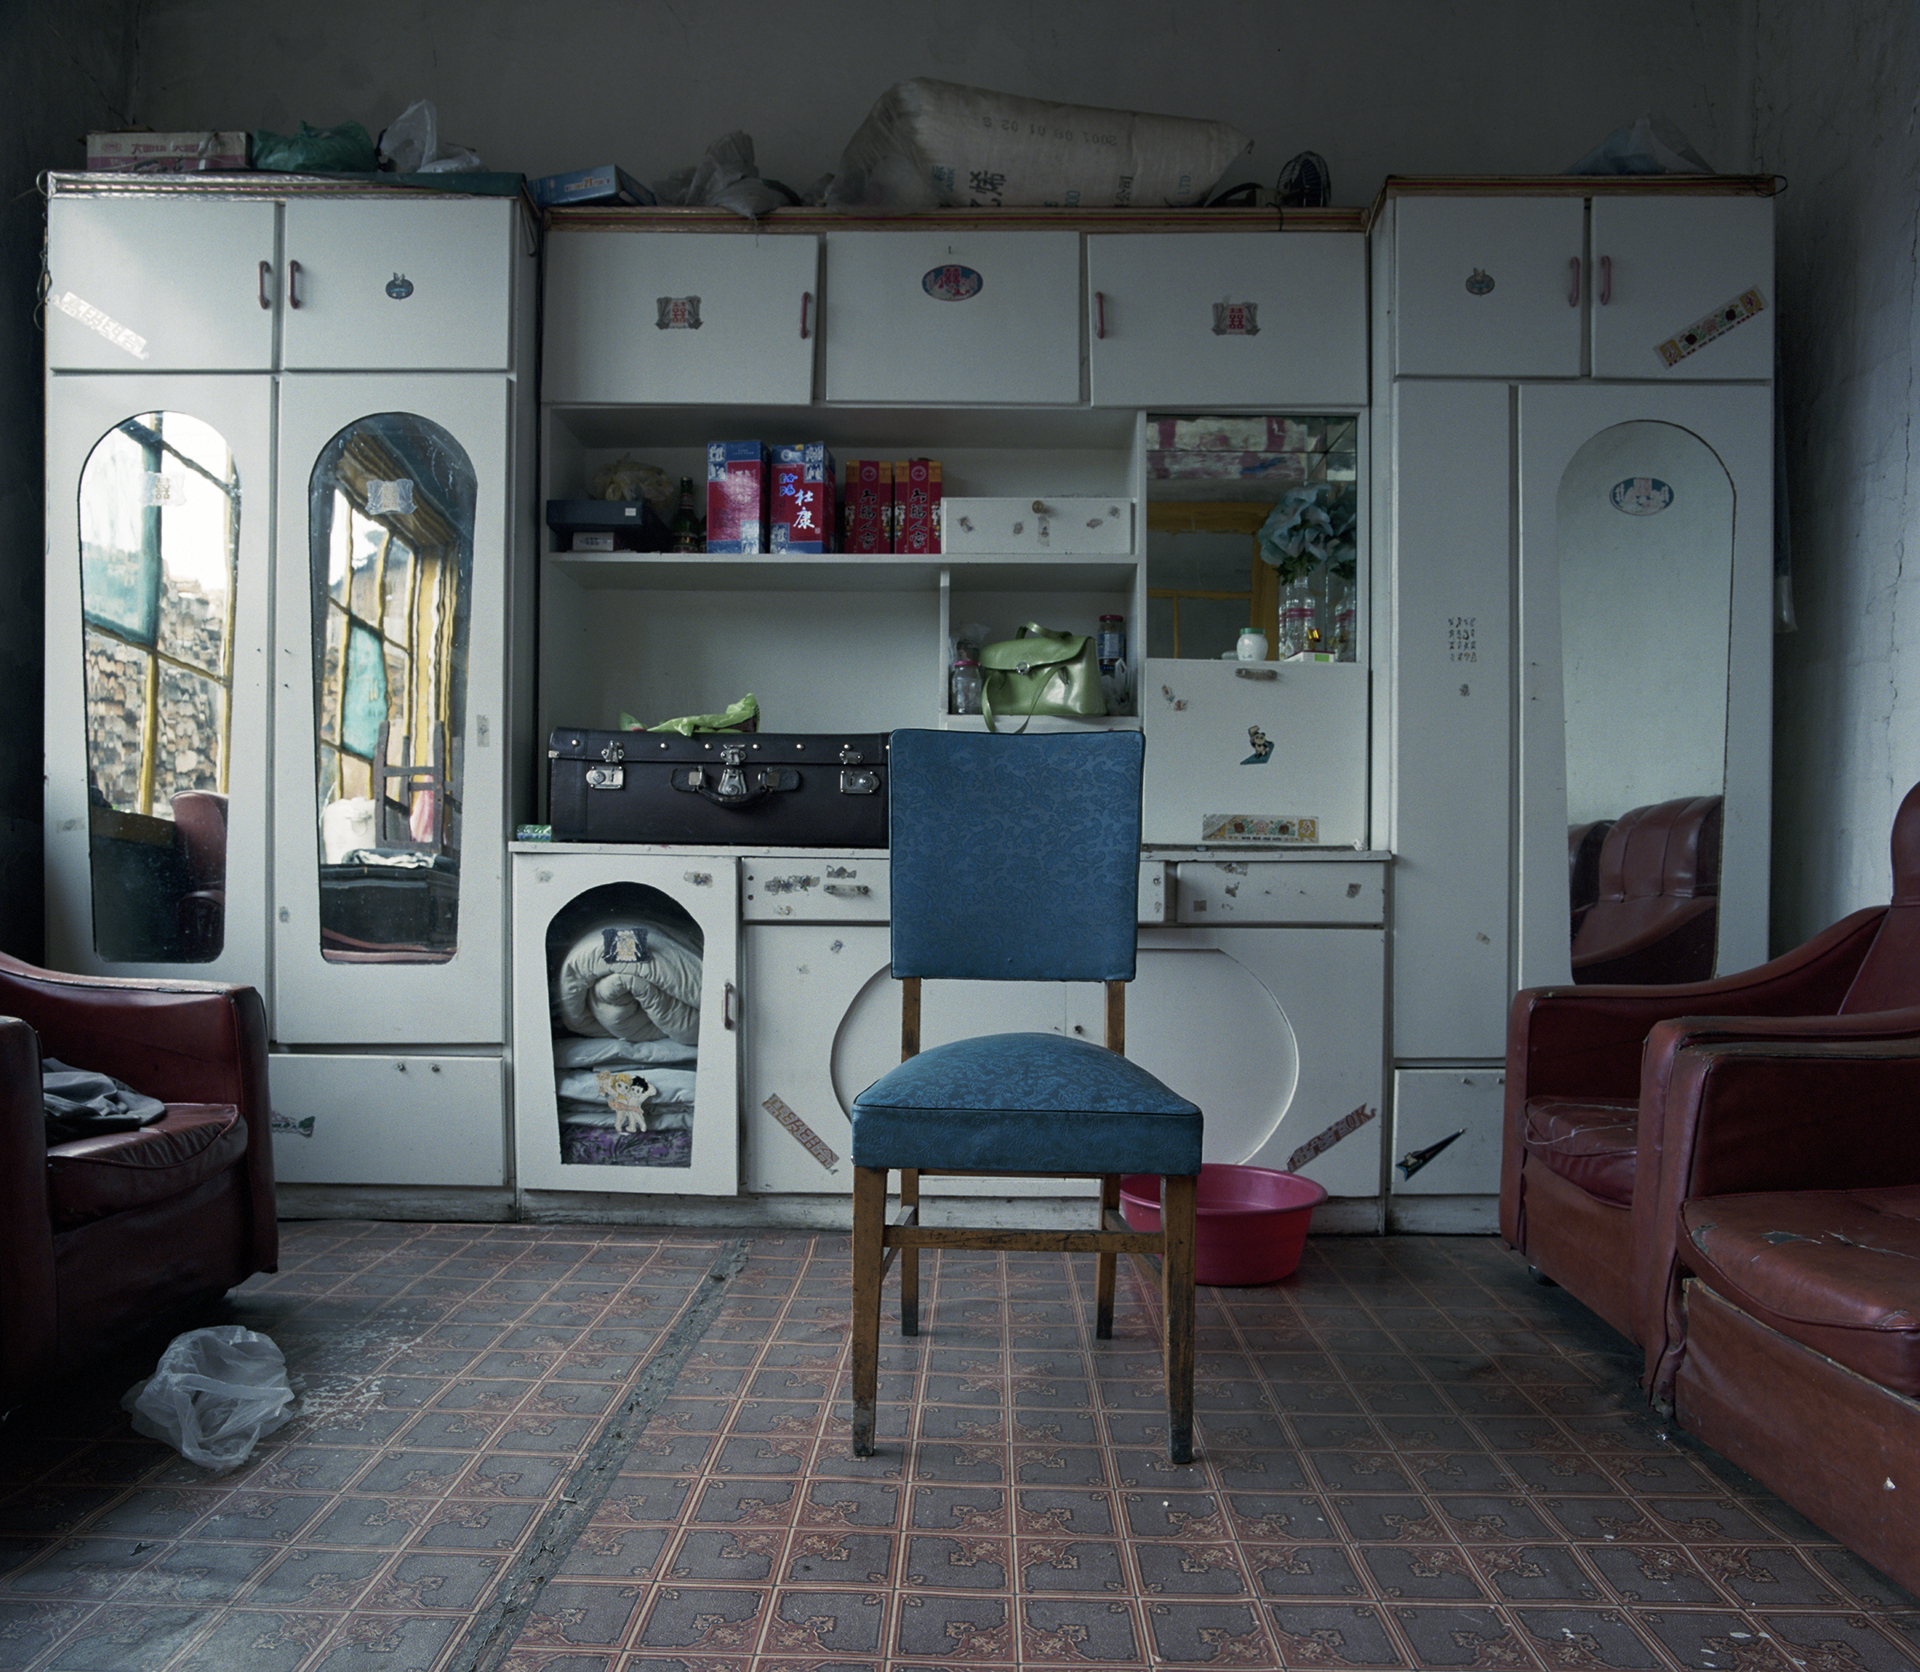 2008 Heilongjiang - This interior is more Russian than Chinese with this beautiful blue chair and the big leather sofa's.